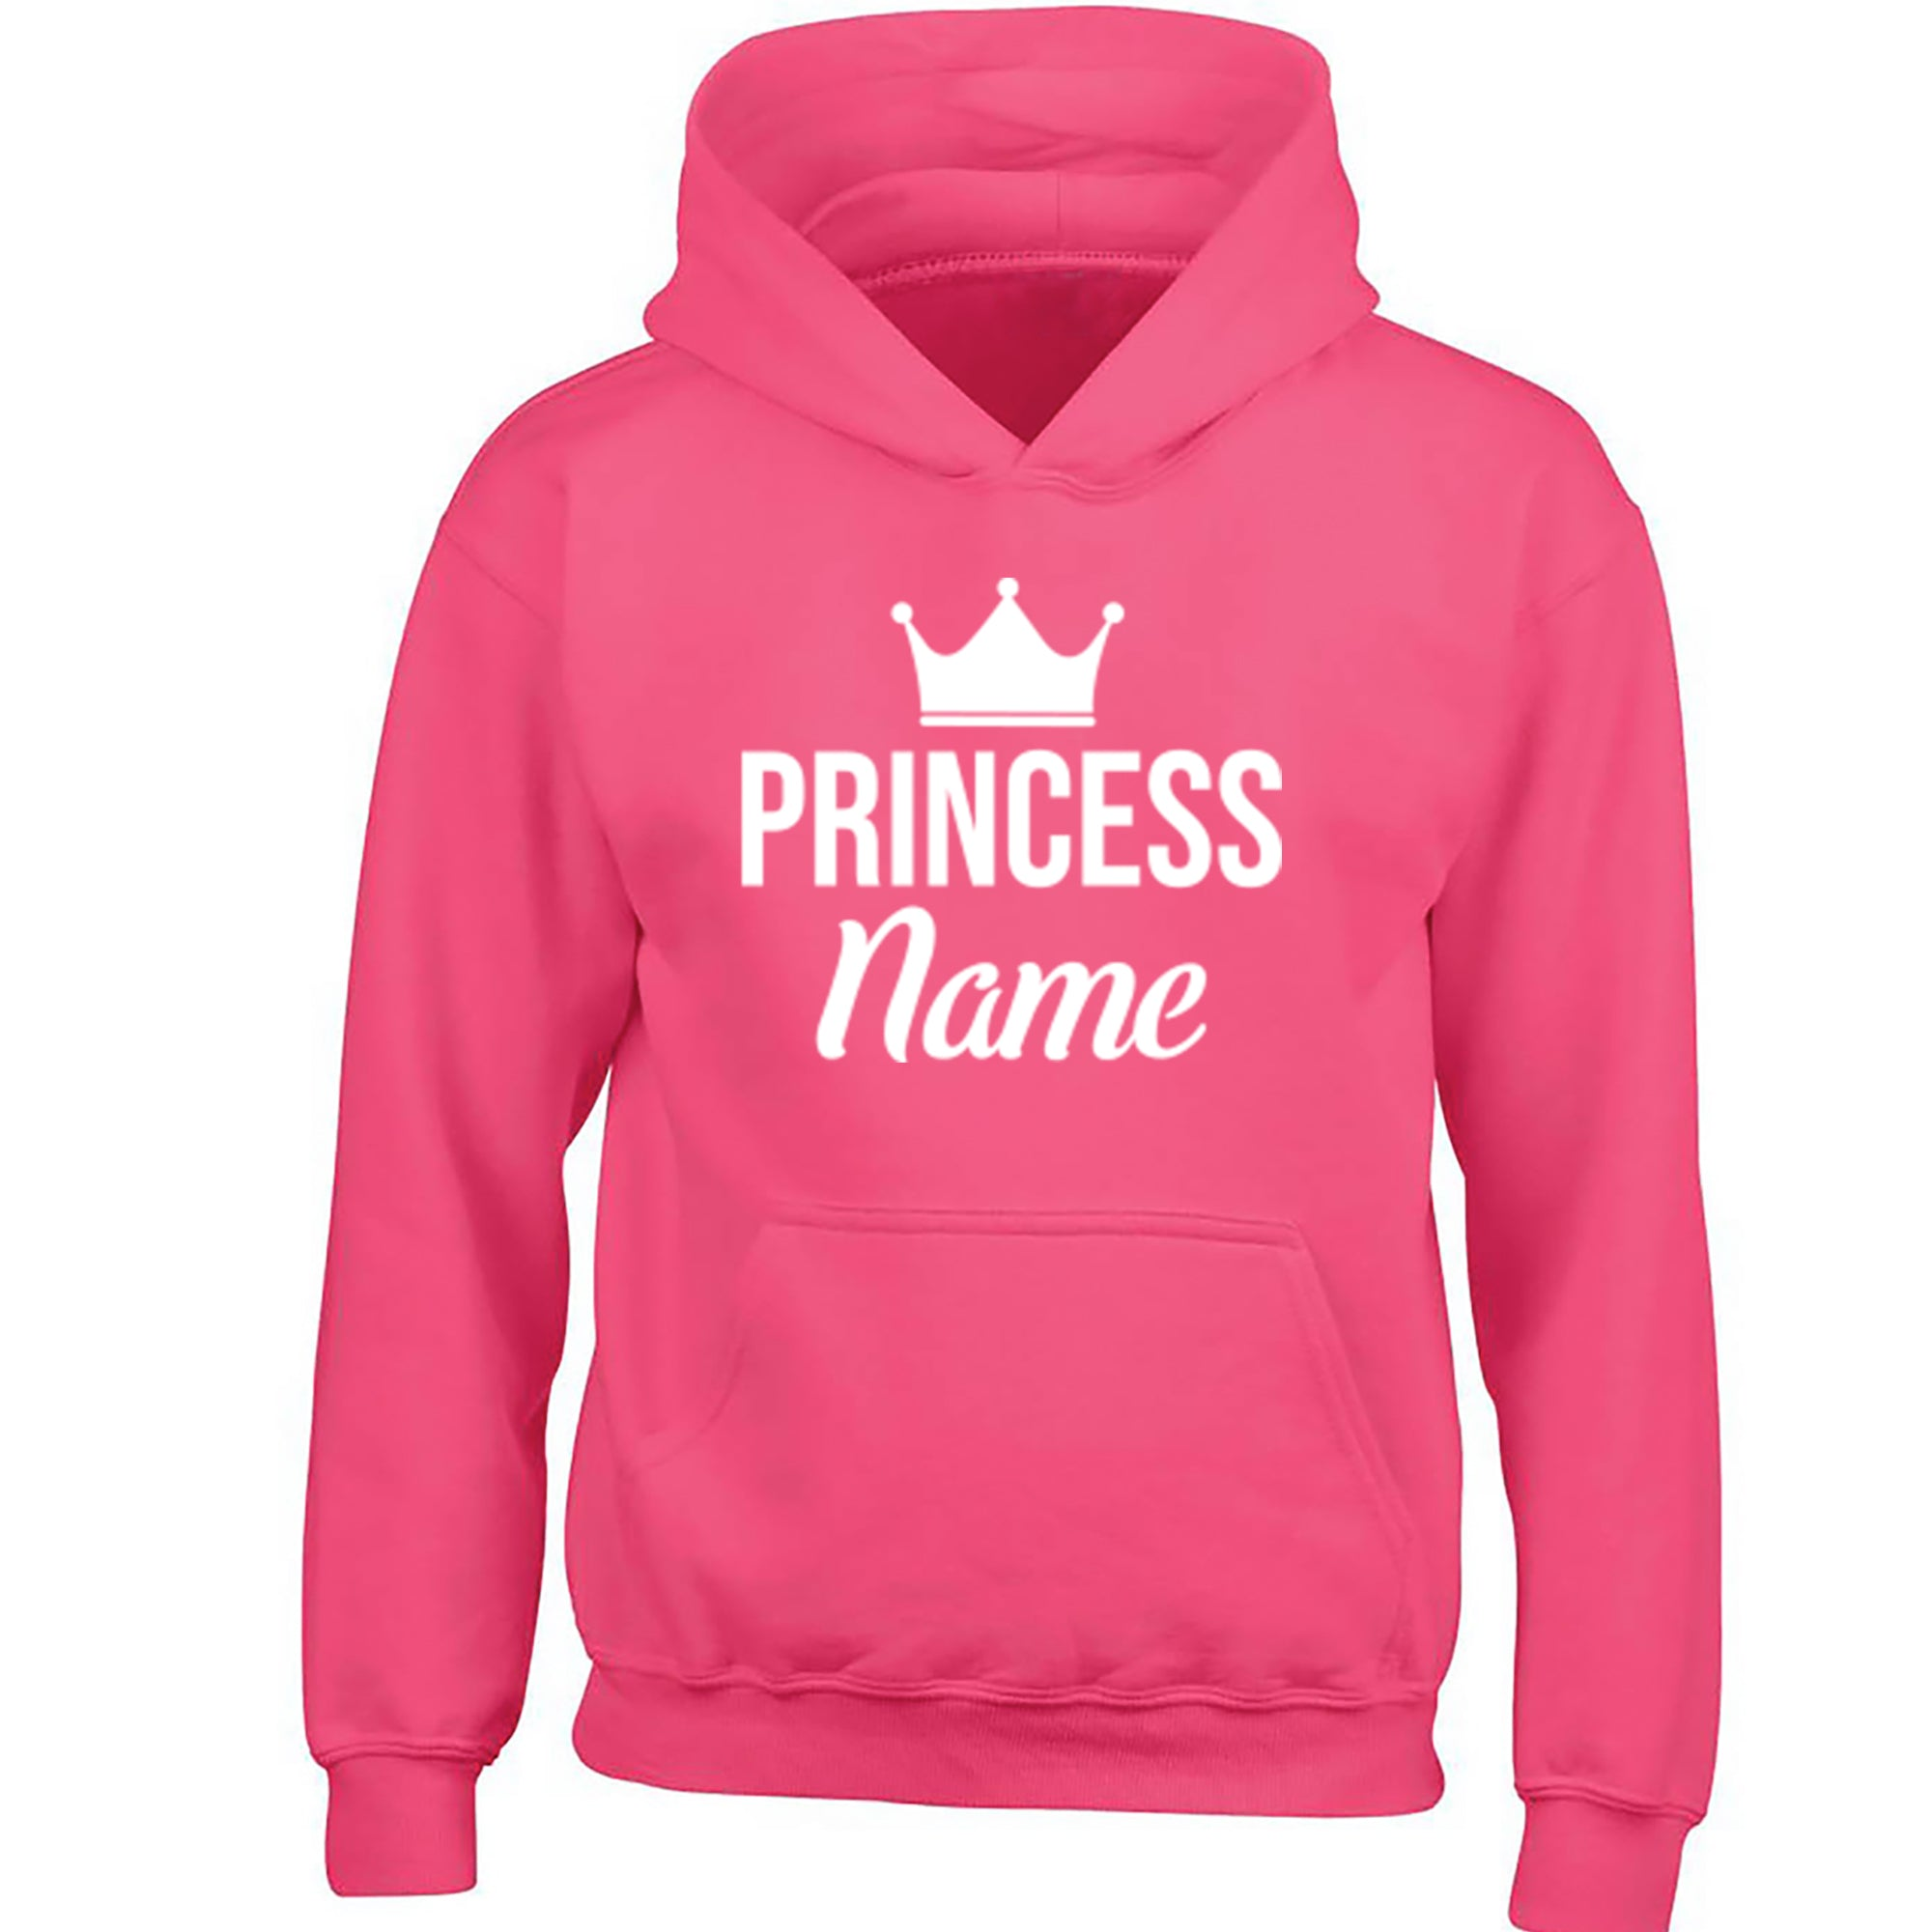 Personalised Princess Design Childrens Ages 3/4-12/14 Unisex Hoodie S0463 - Illustrated Identity Ltd.